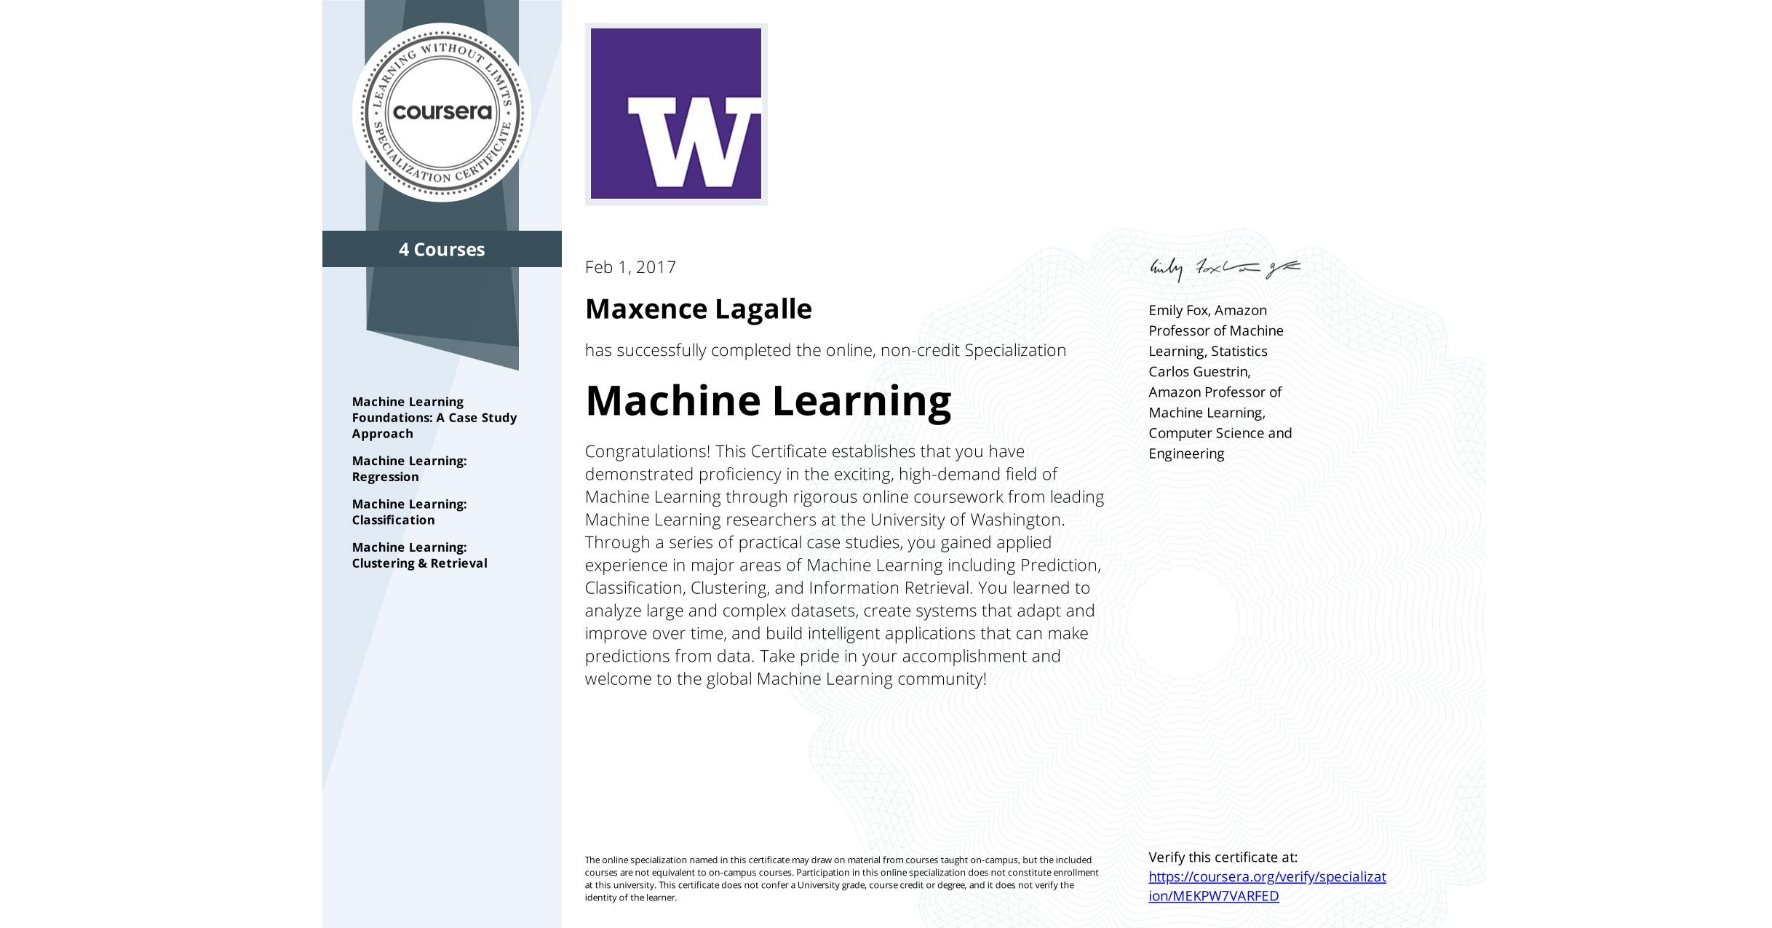 View certificate for Maxence Lagalle, Machine Learning, offered through Coursera. Congratulations! This Certificate establishes that you have demonstrated proficiency in the exciting, high-demand field of Machine Learning through rigorous online coursework from leading Machine Learning researchers at the University of Washington. Through a series of practical case studies, you gained applied experience in major areas of Machine Learning including Prediction, Classification, Clustering, and Information Retrieval. You learned to analyze large and complex datasets, create systems that adapt and improve over time, and build intelligent applications that can make predictions from data. Take pride in your accomplishment and welcome to the global Machine Learning community!